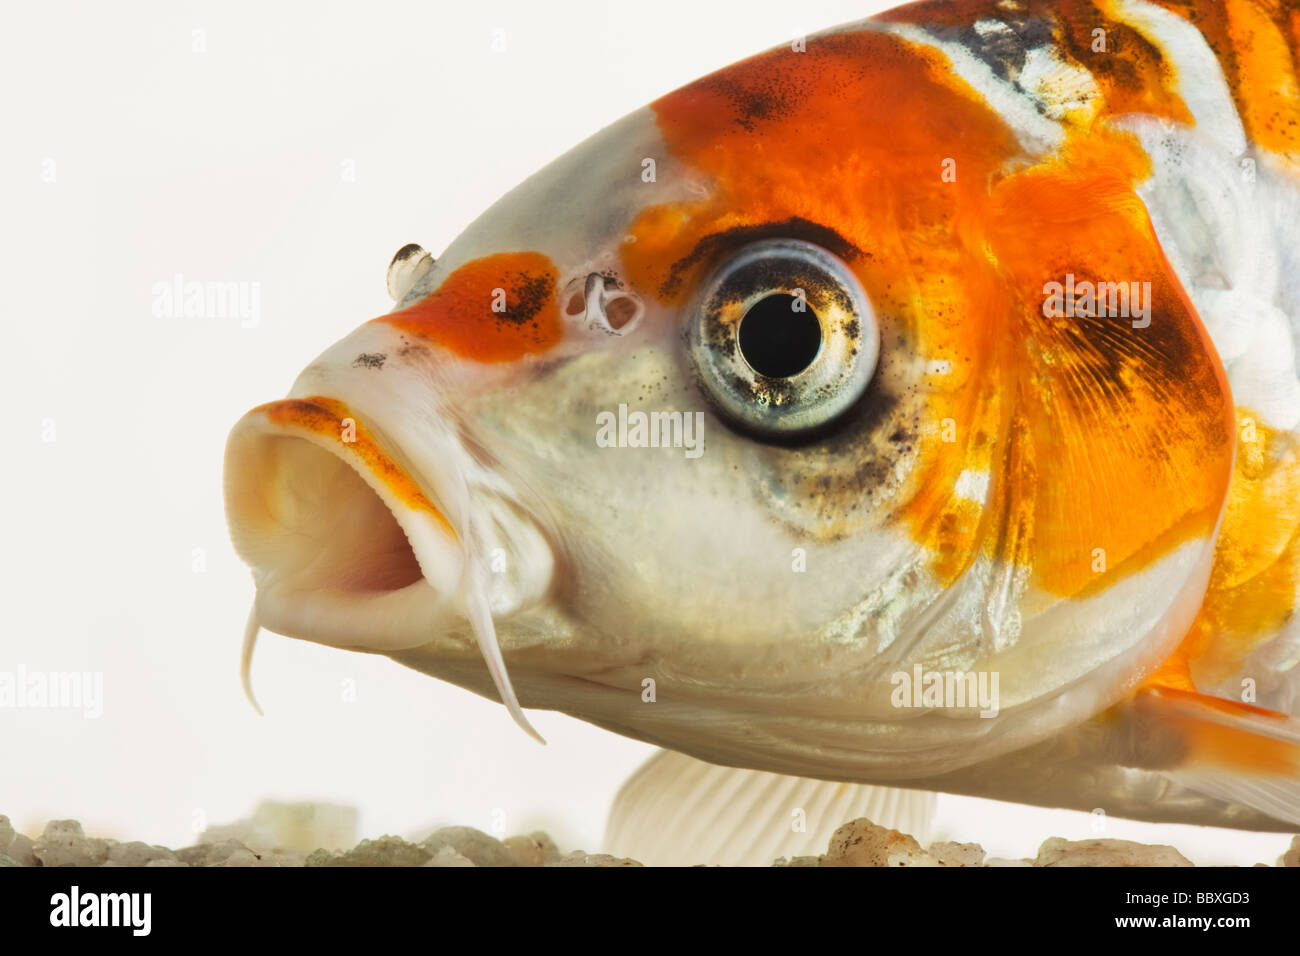 pet fish stock photos u0026 pet fish stock images alamy